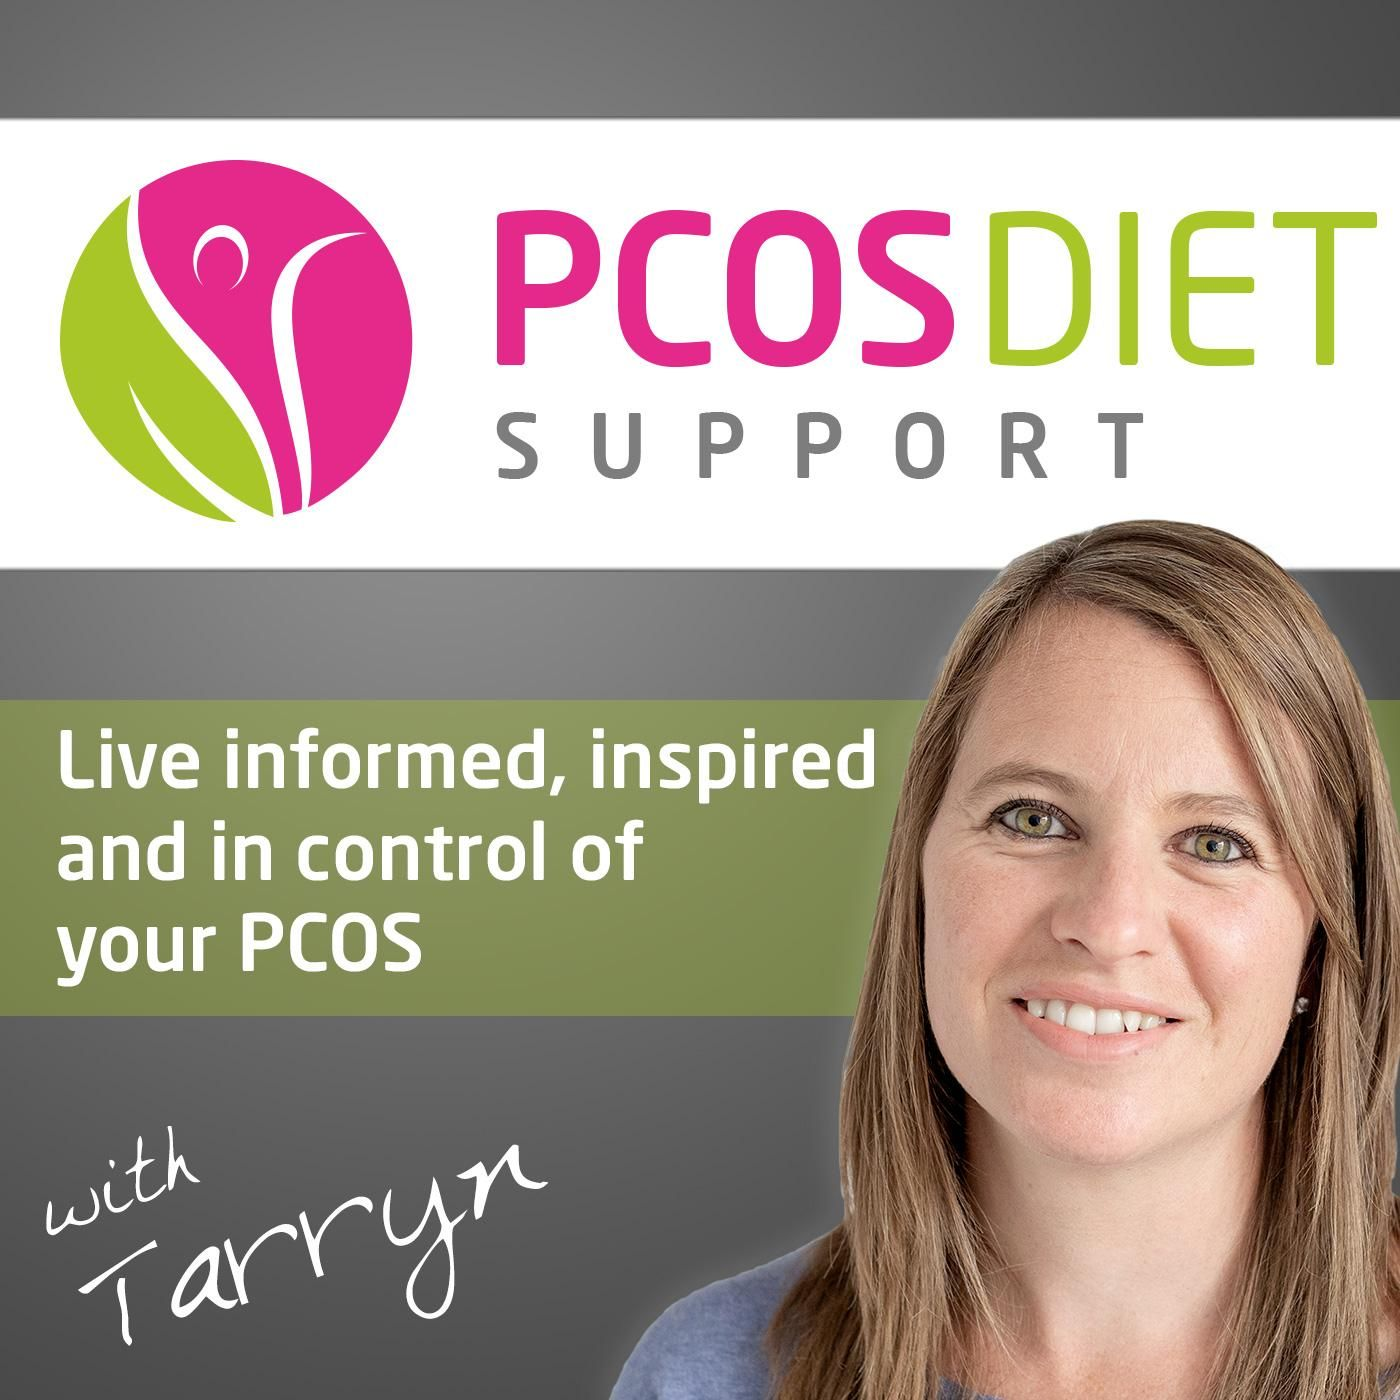 011: Getting diagnosed as a teen and having a Mom with PCOS too - with Kim Bigler